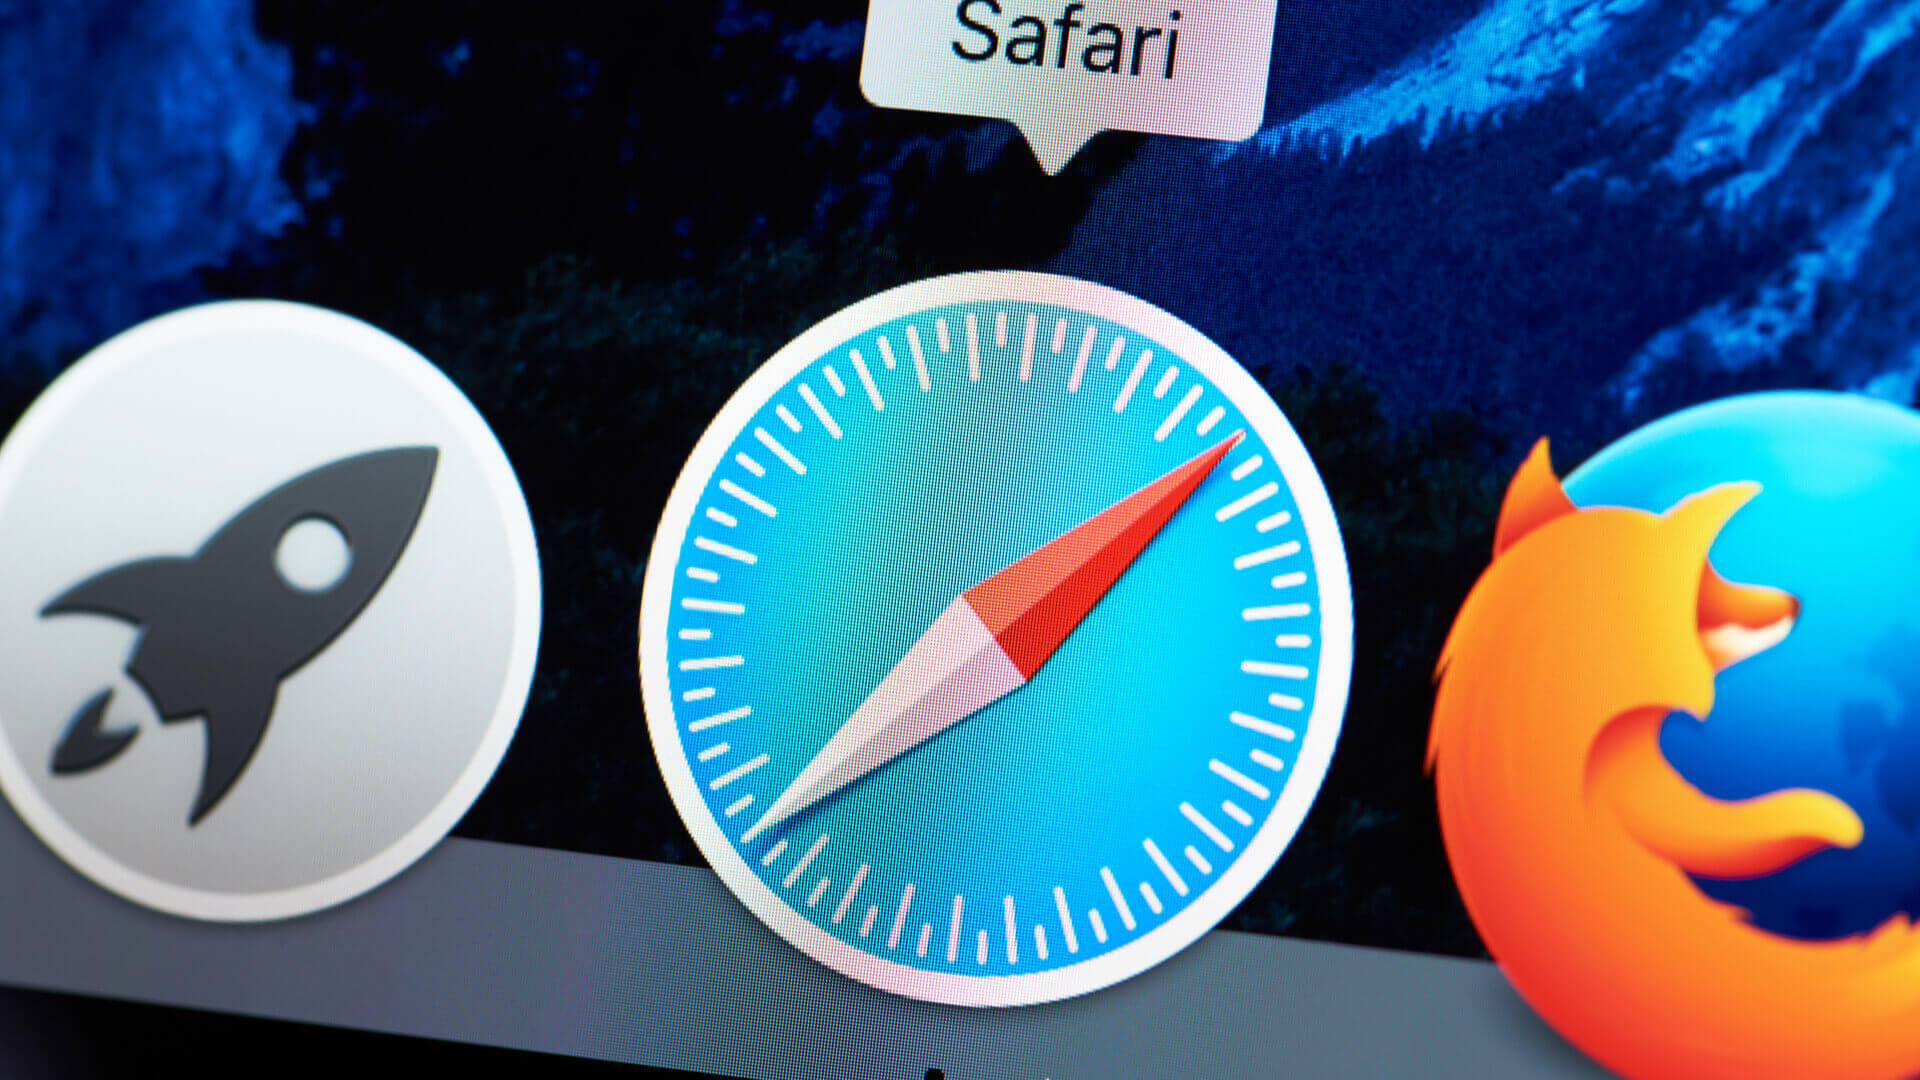 Apple is removing the Do Not Track setting from Safari